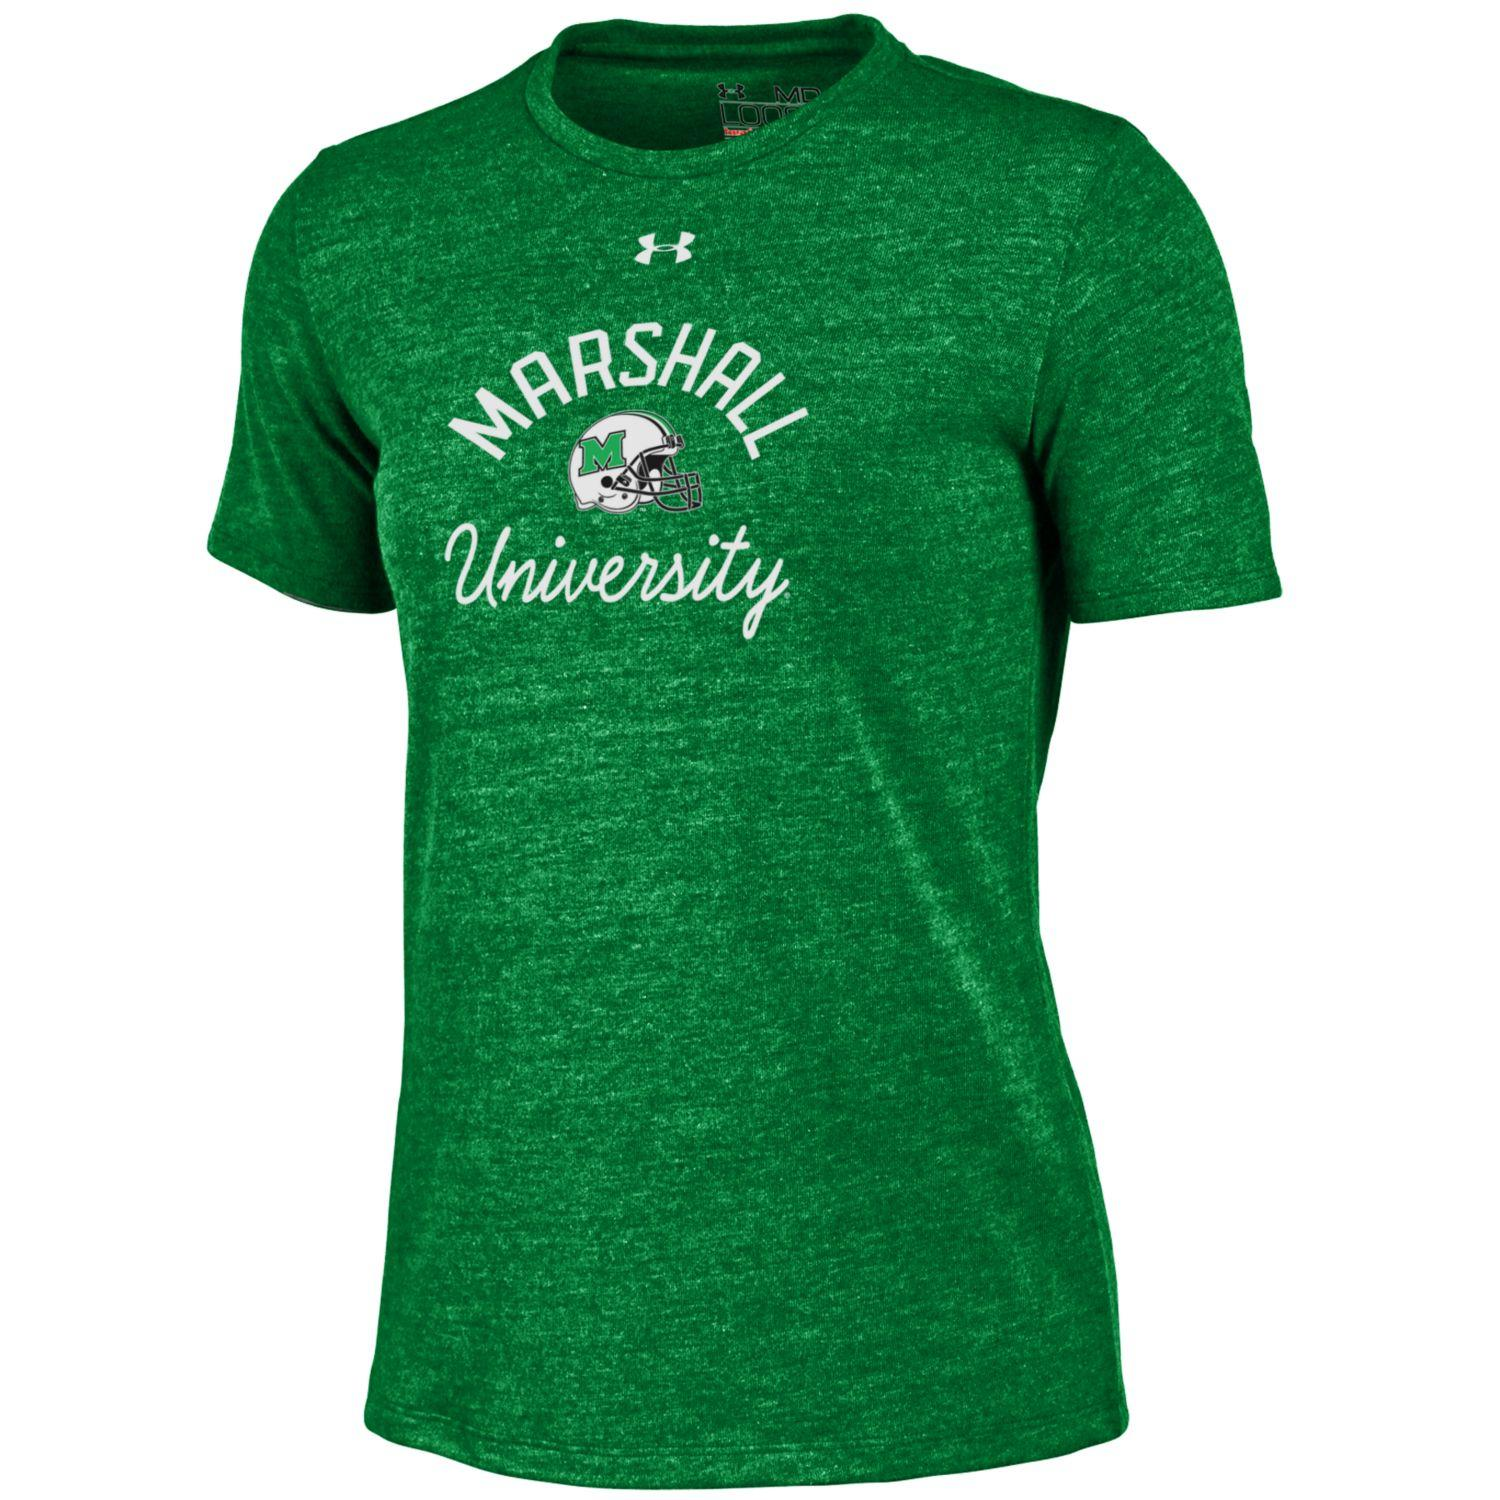 26845 <BR> Under Armour <br>Marshall University Tee <br>$34.99